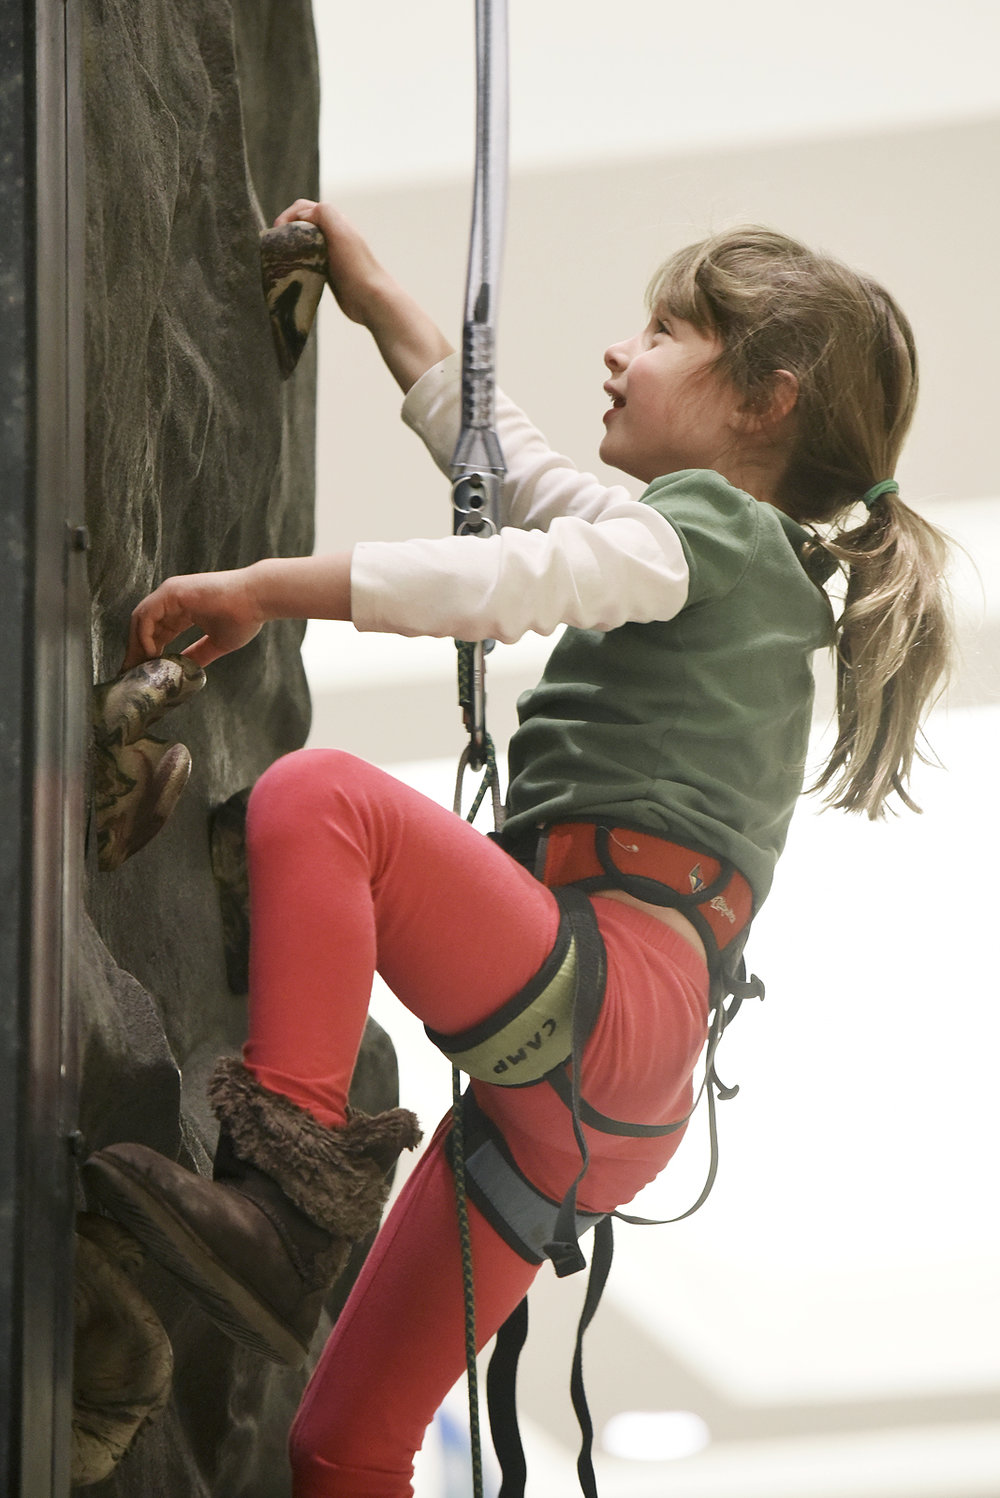 ERICA MILLER / GAZETTE PHOTOGRAPHER  Victoria Tastensen, 6-years-old of Wilton, climbs the rock climbing wall at Damien Rock Wall booth during the Adirondack Sports Summer Expo at the Saratoga Springs City Center on Saturday afternoon, March 18, 2017.